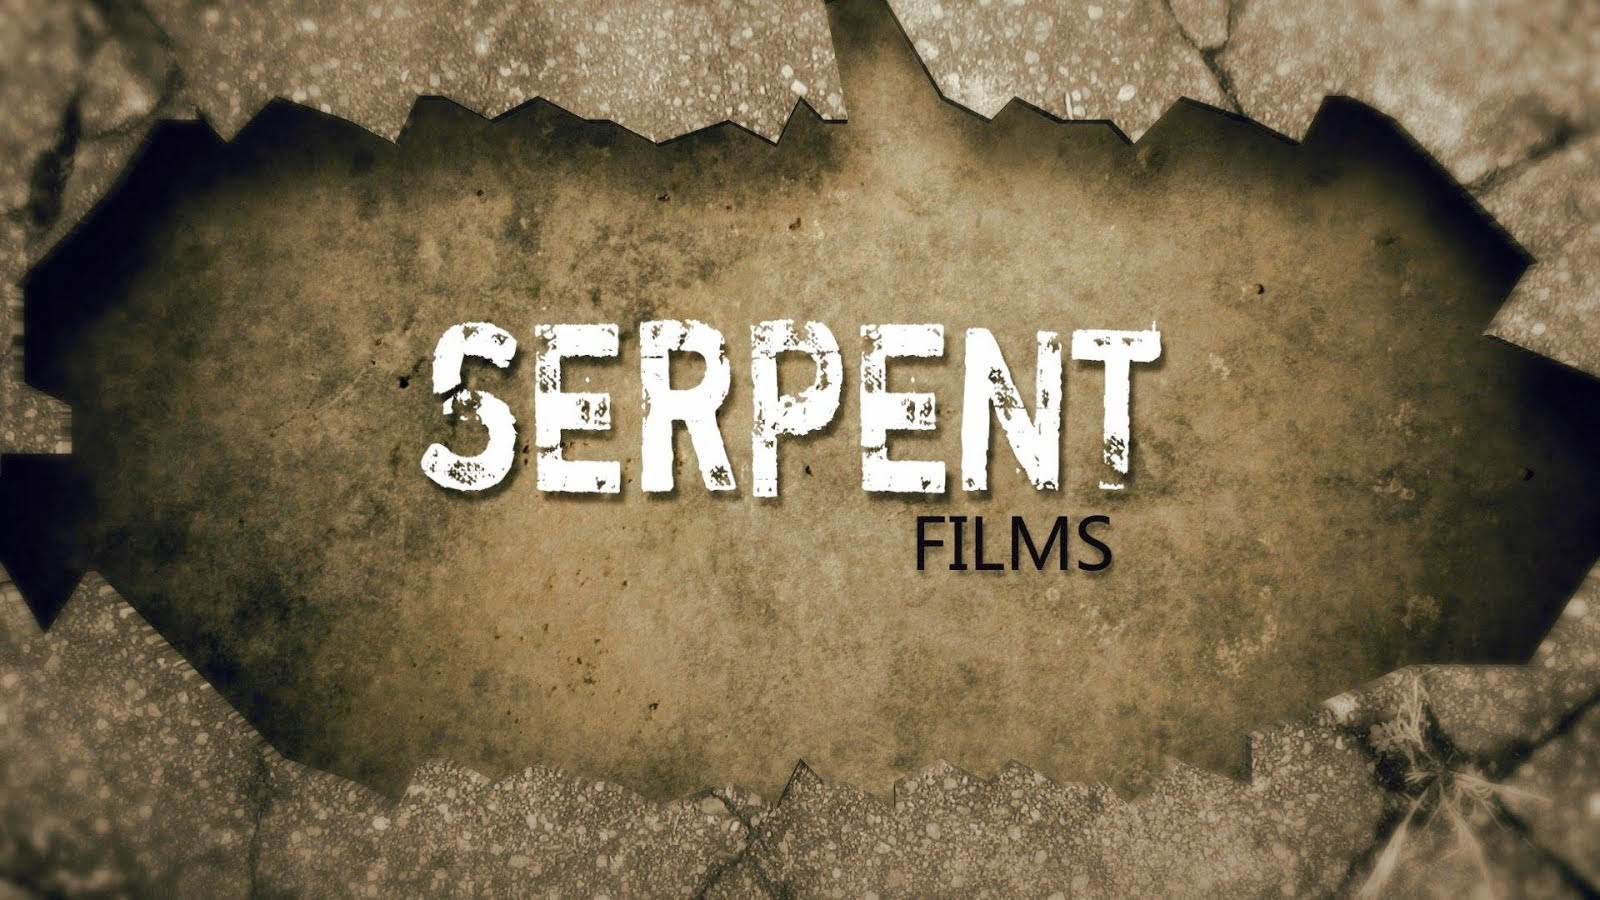 http://www.serpentfilms.blogspot.com